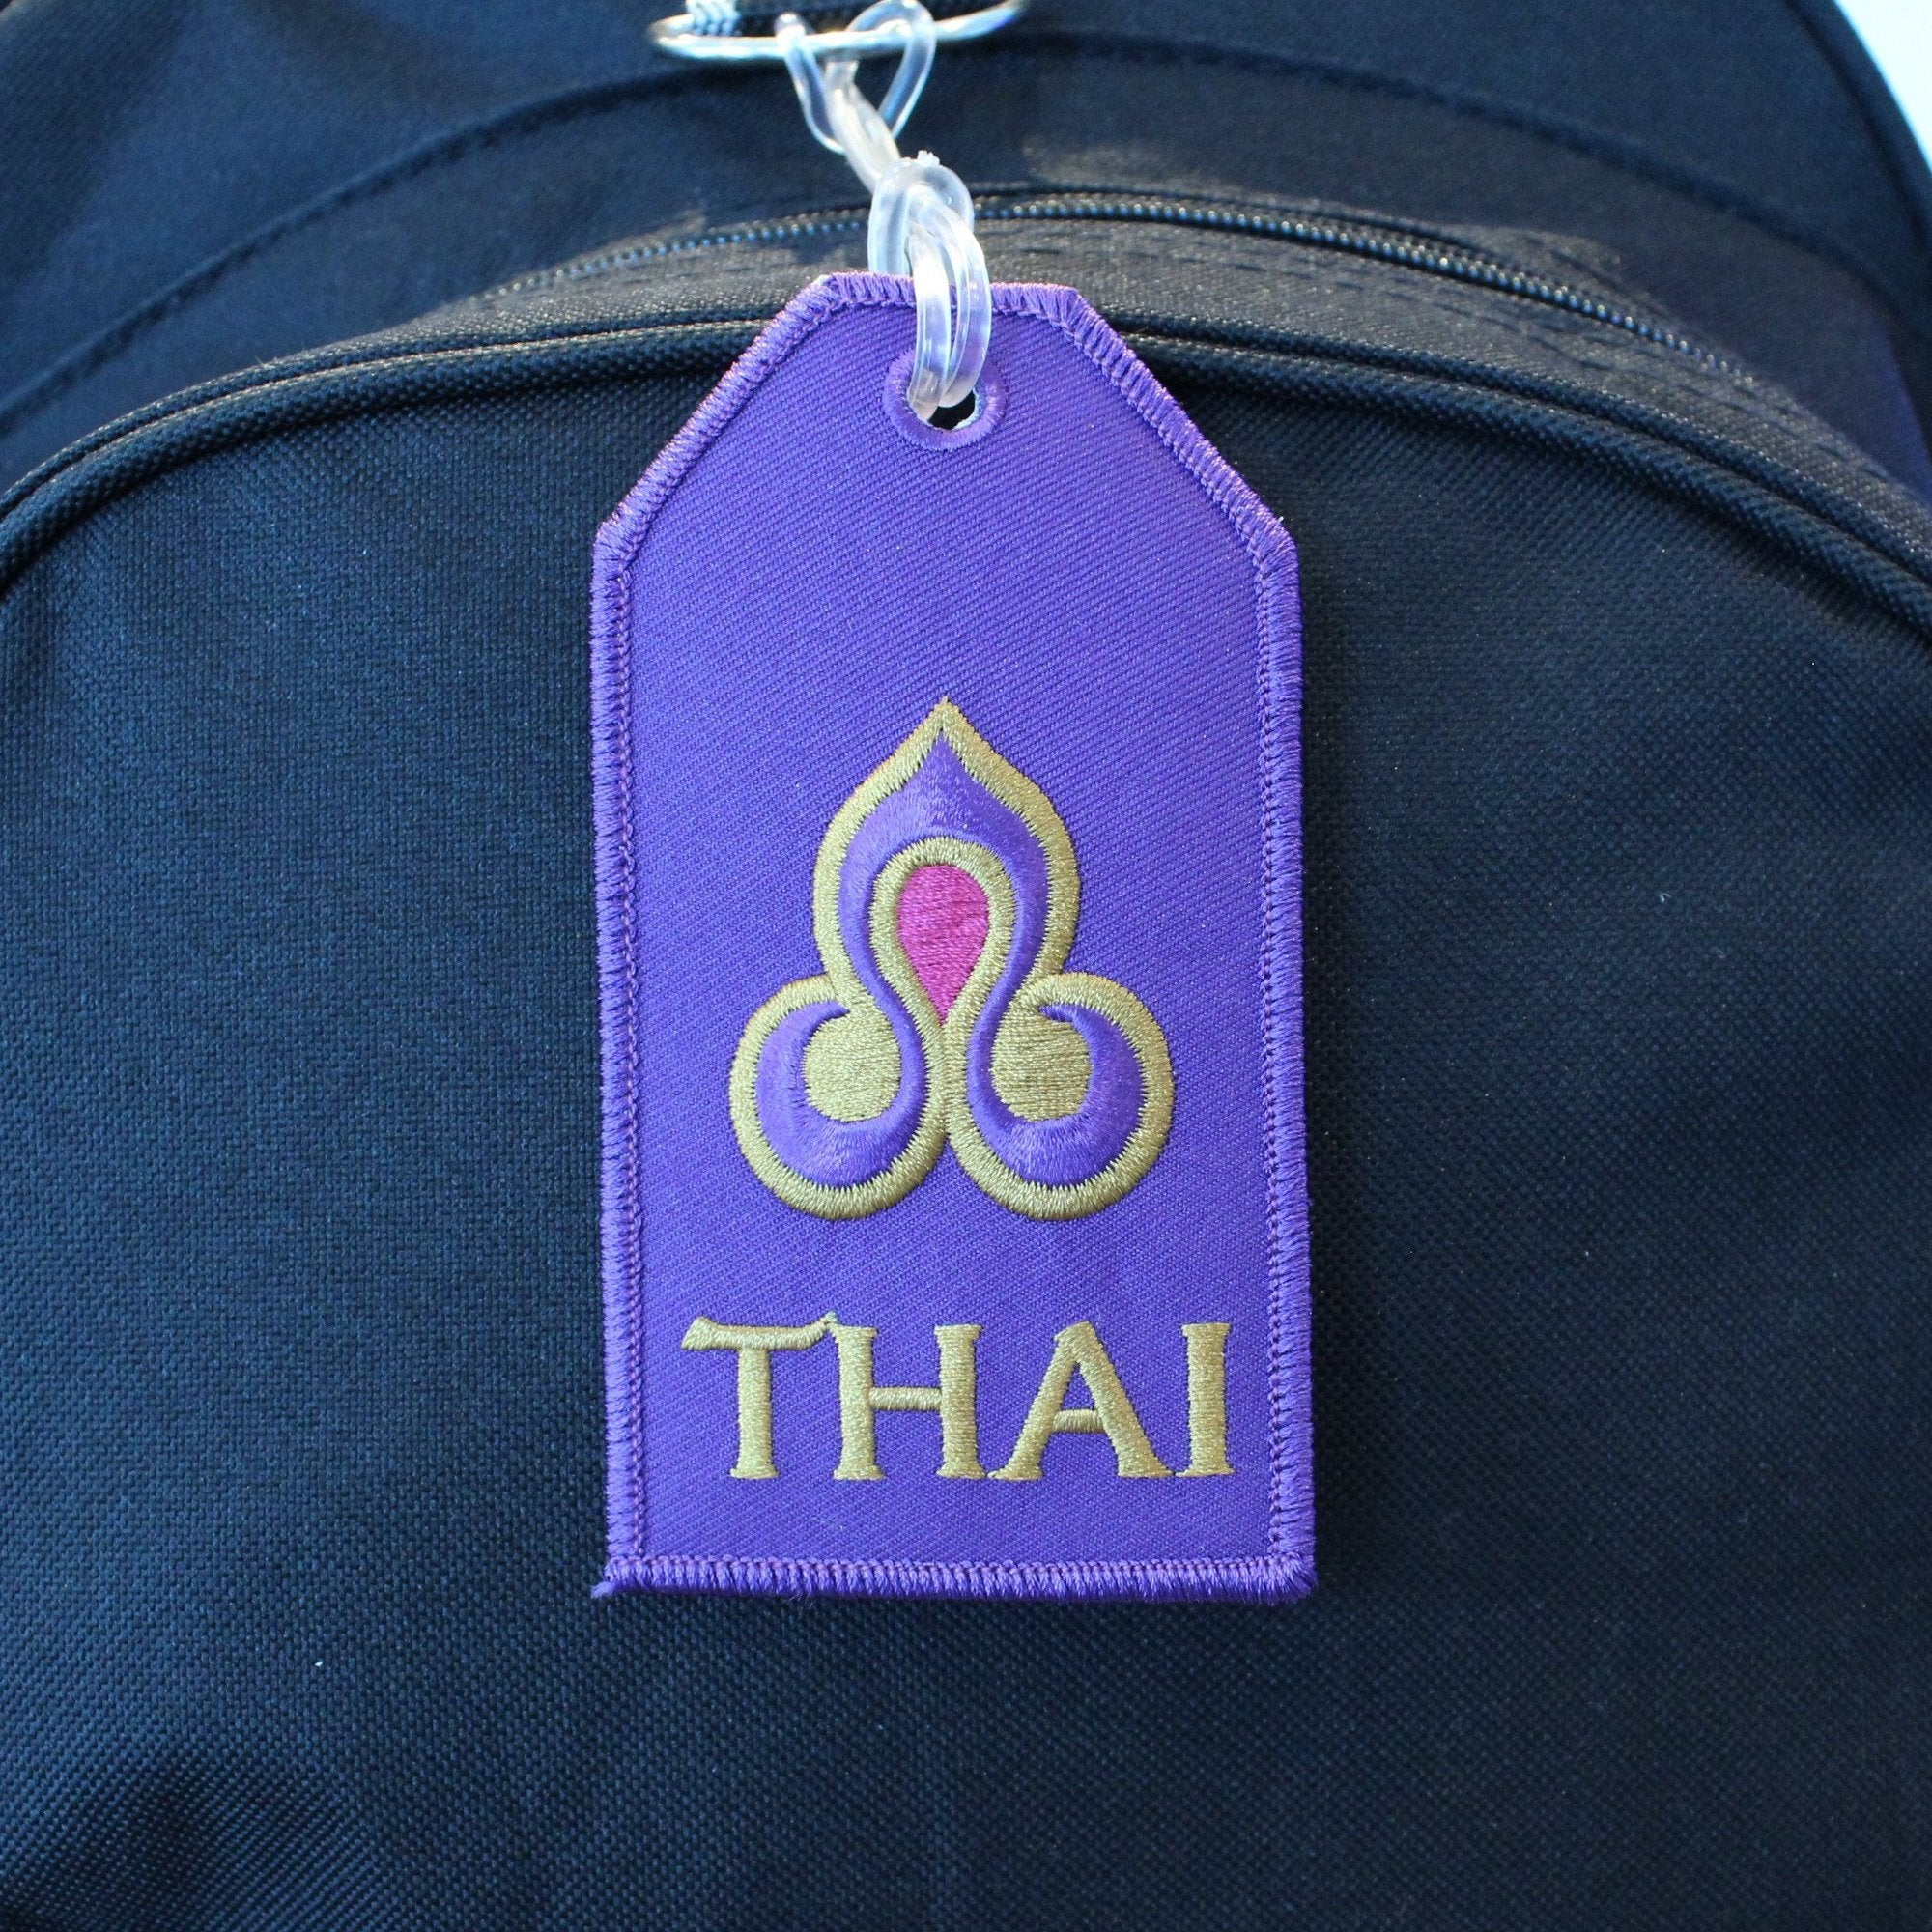 Thai Airlines - Bag Tag